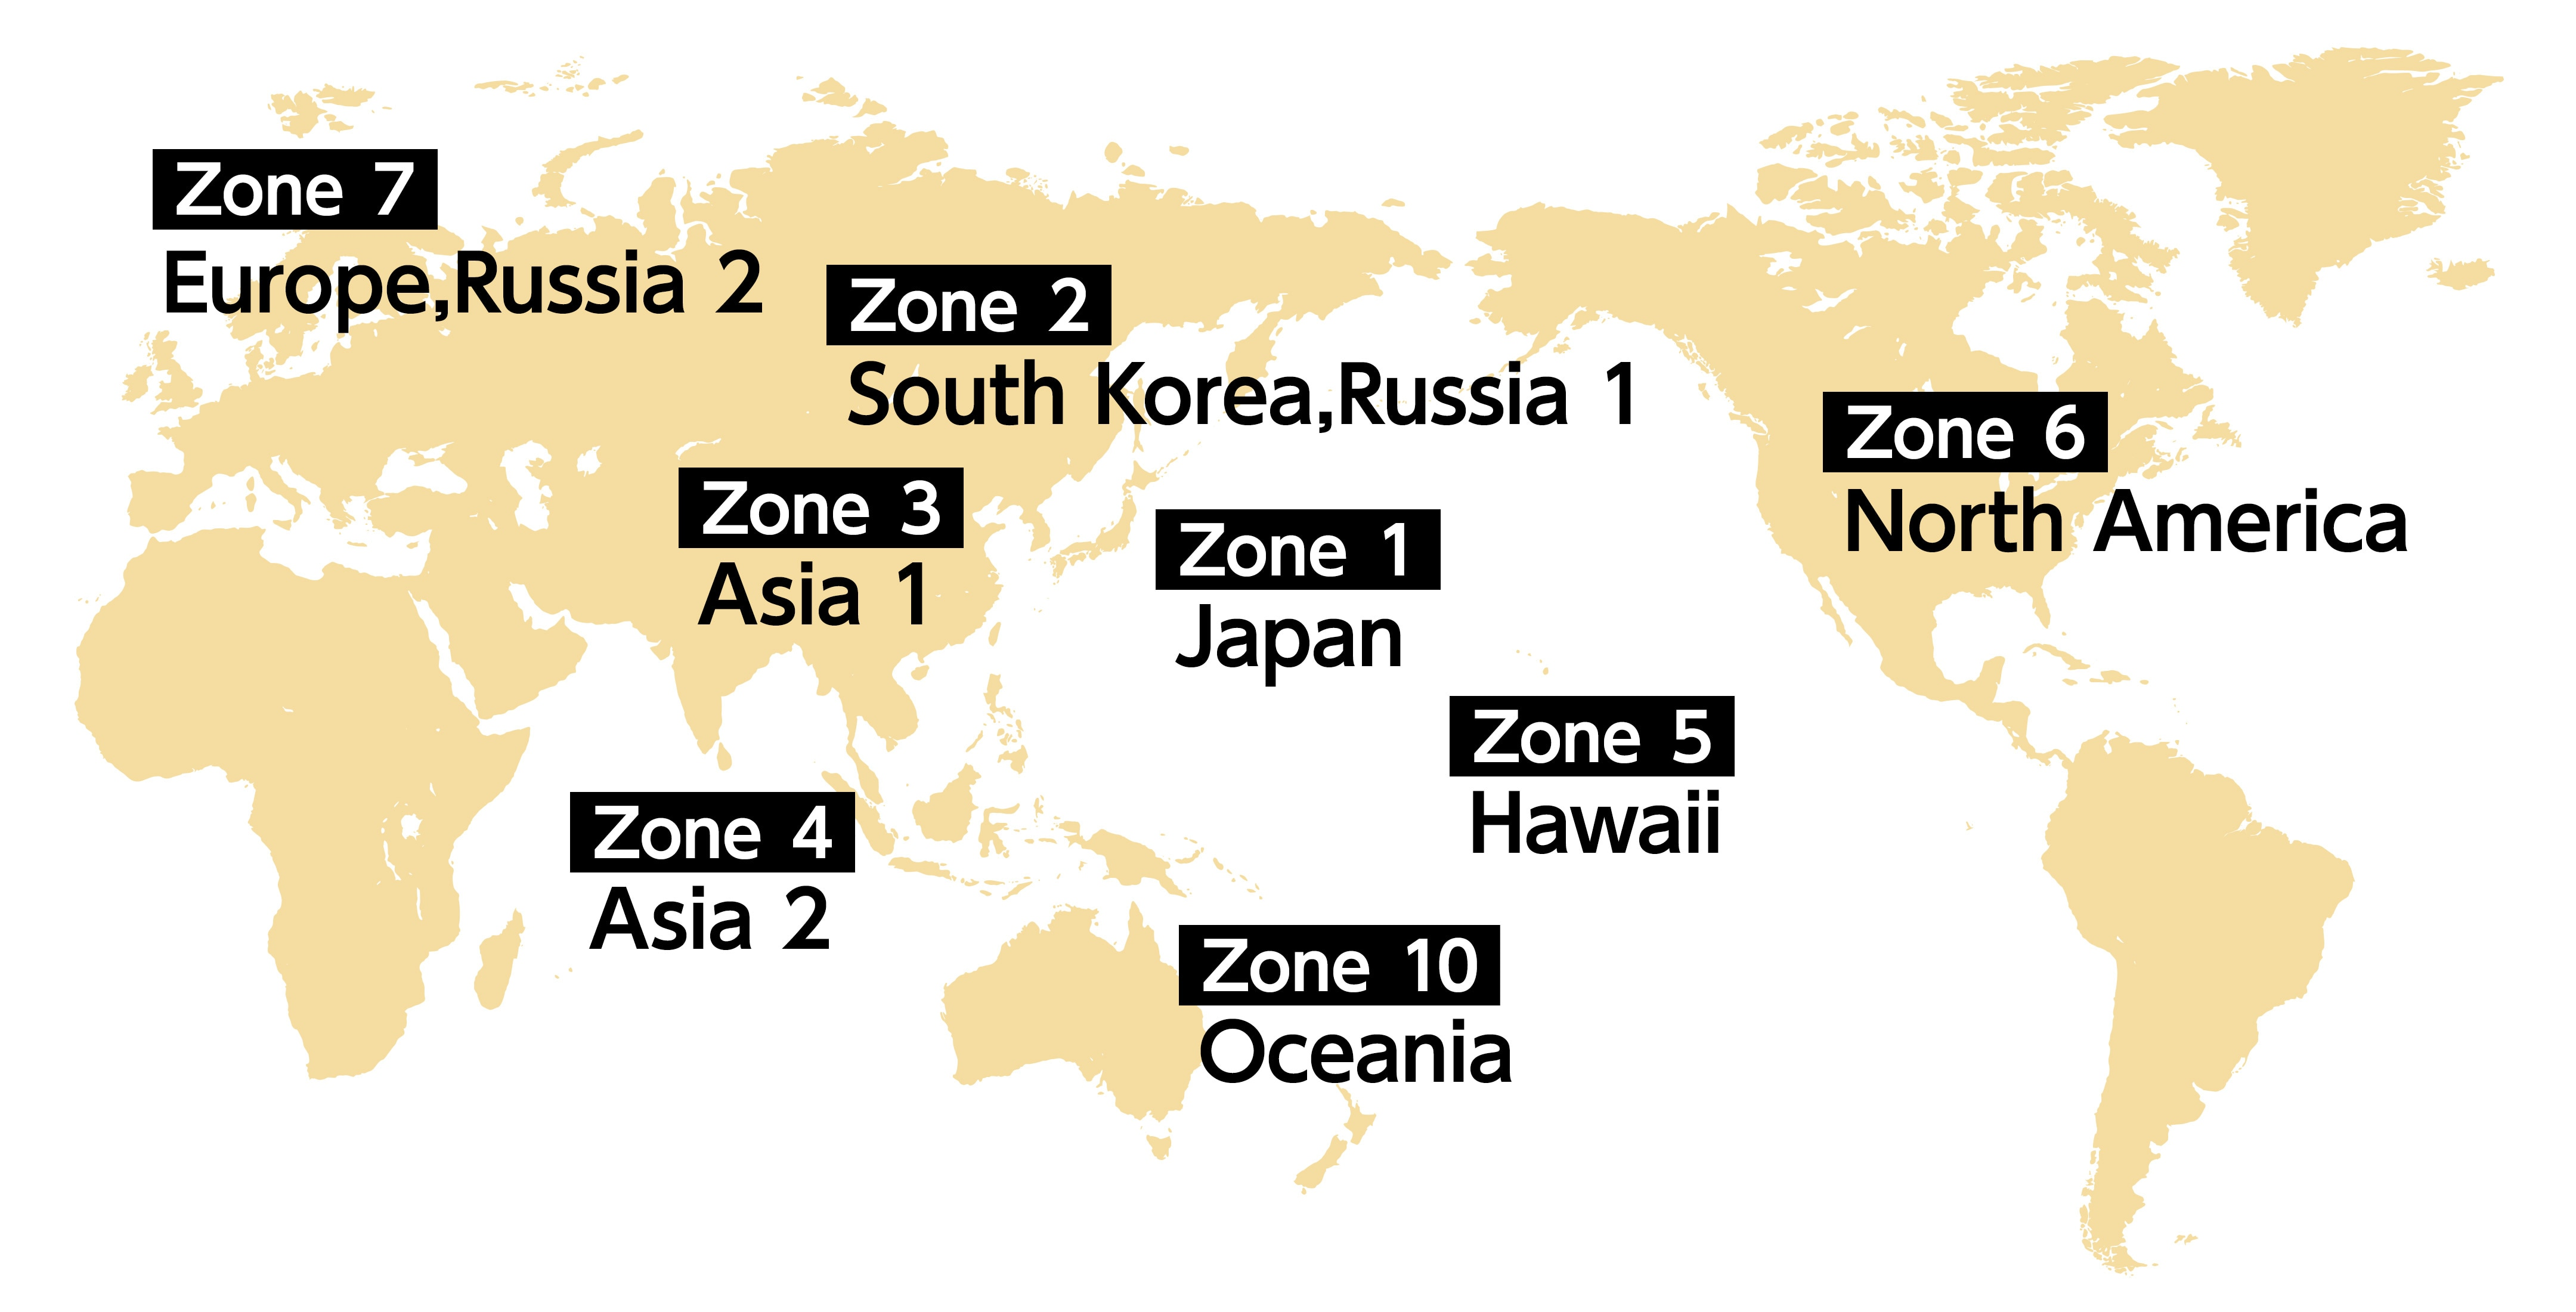 Japan (Zone 1), Korea・Russia 1(Zone 2), Asia 1 (Zone 3), Asia 2 (Zone 4), Hawaii (Zone 5), North America (Zone 6), Europe・Russia(Zone 7), Oceania (Zone 10),